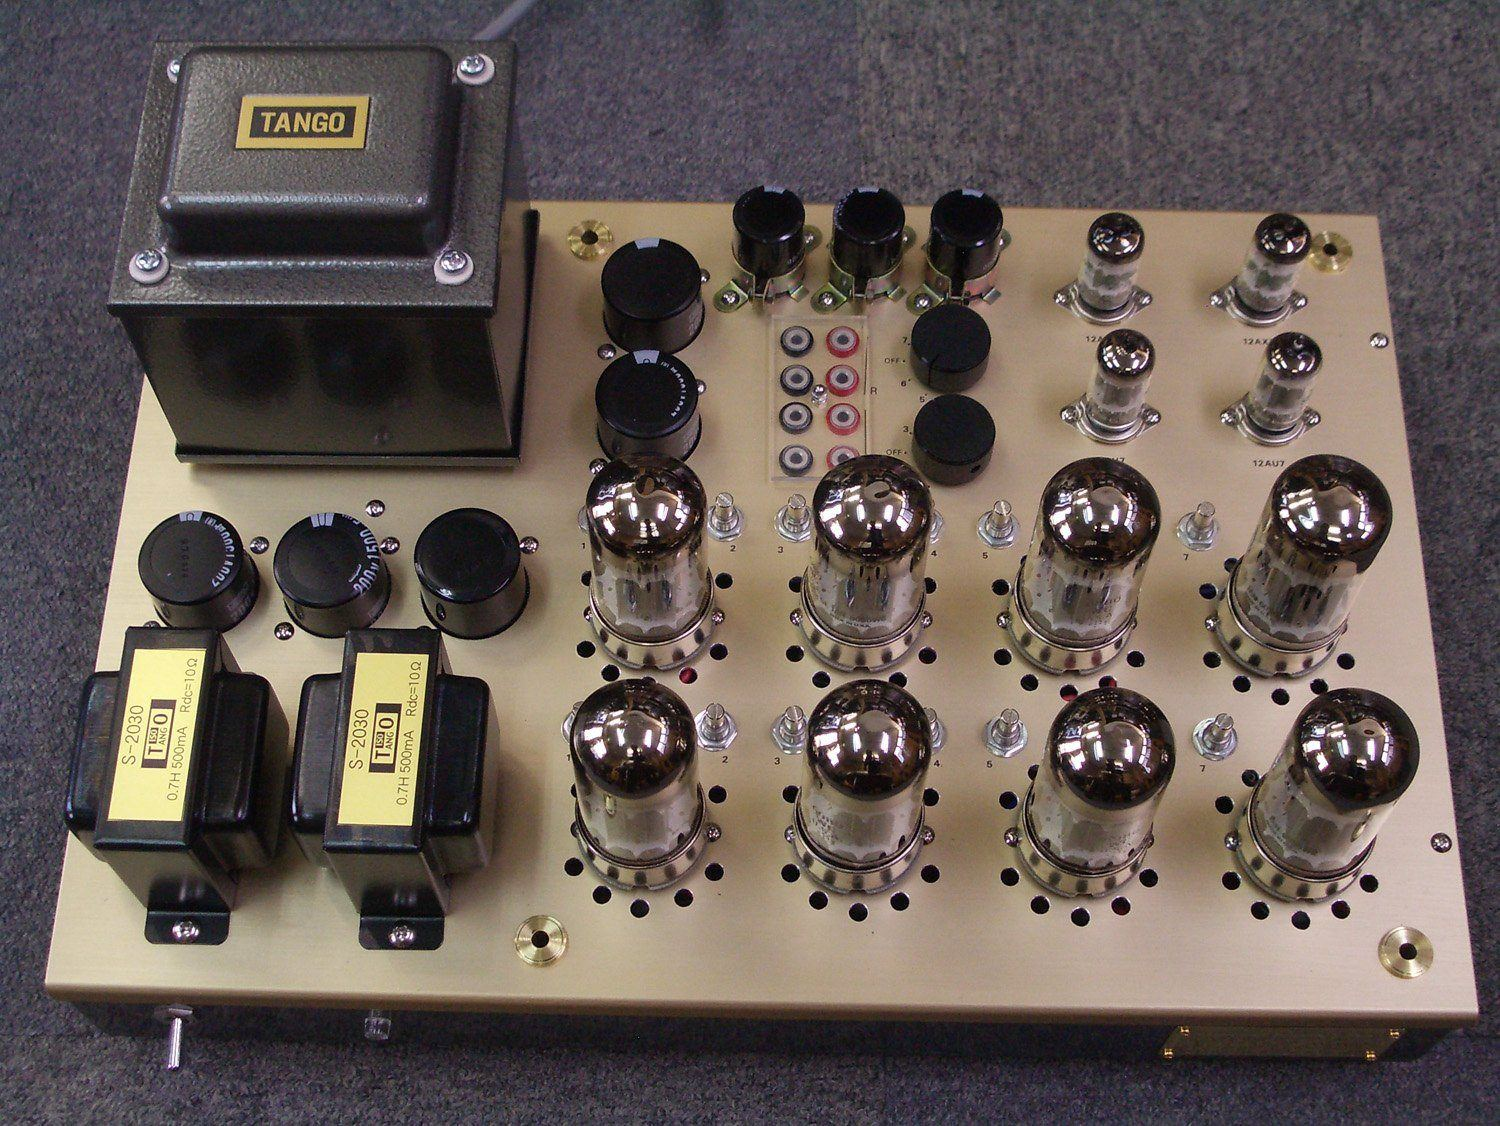 Miyajima Lab Model 2010 OTL Amplifier